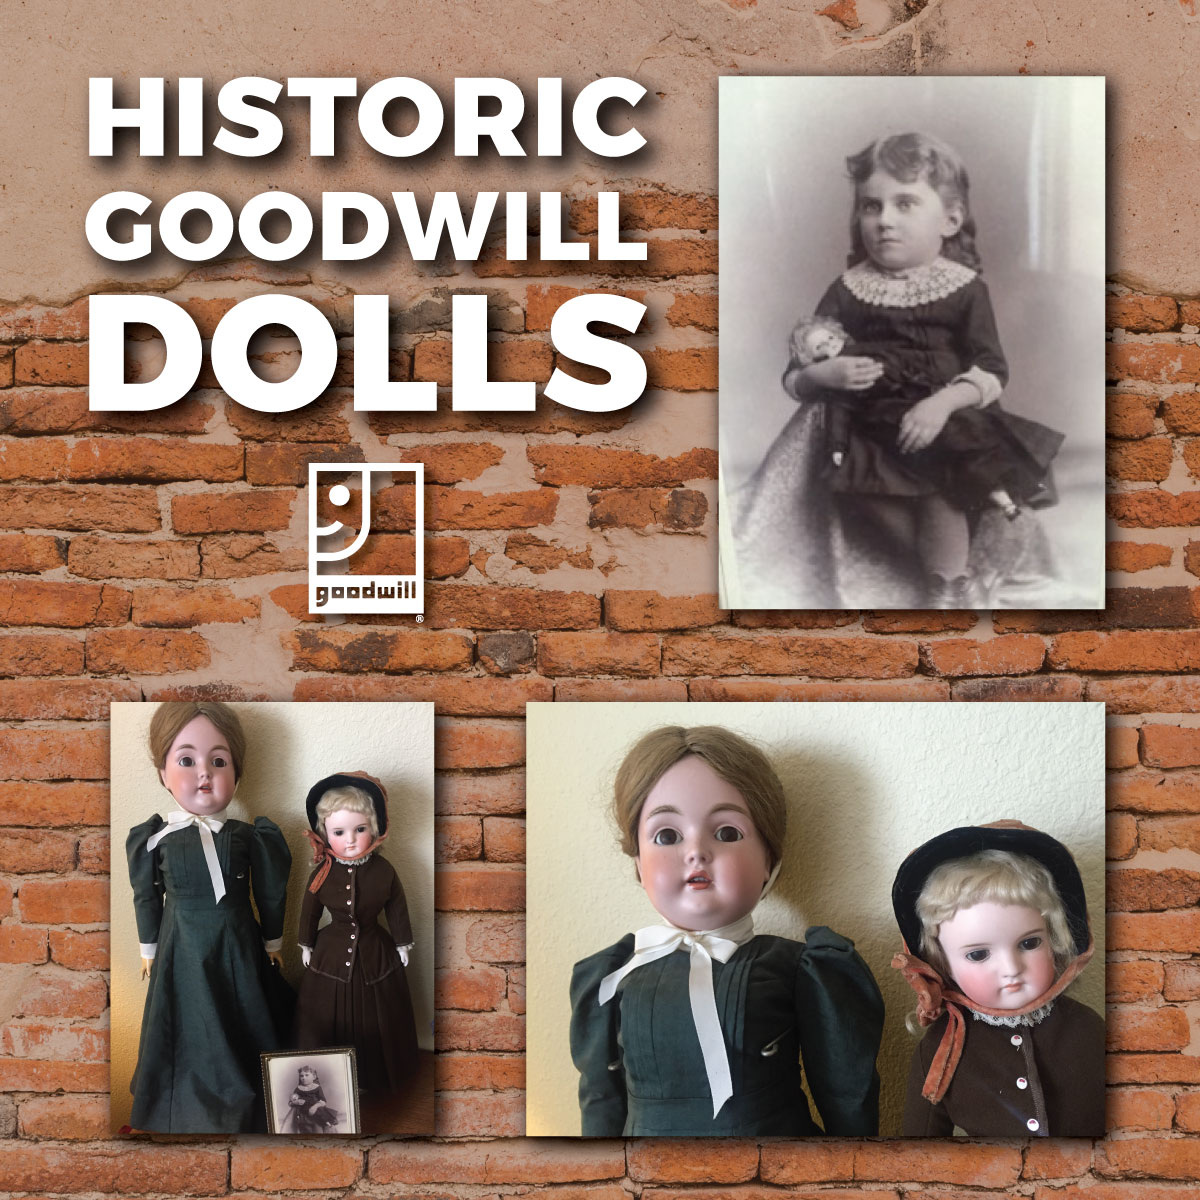 Historic Goodwill Dolls